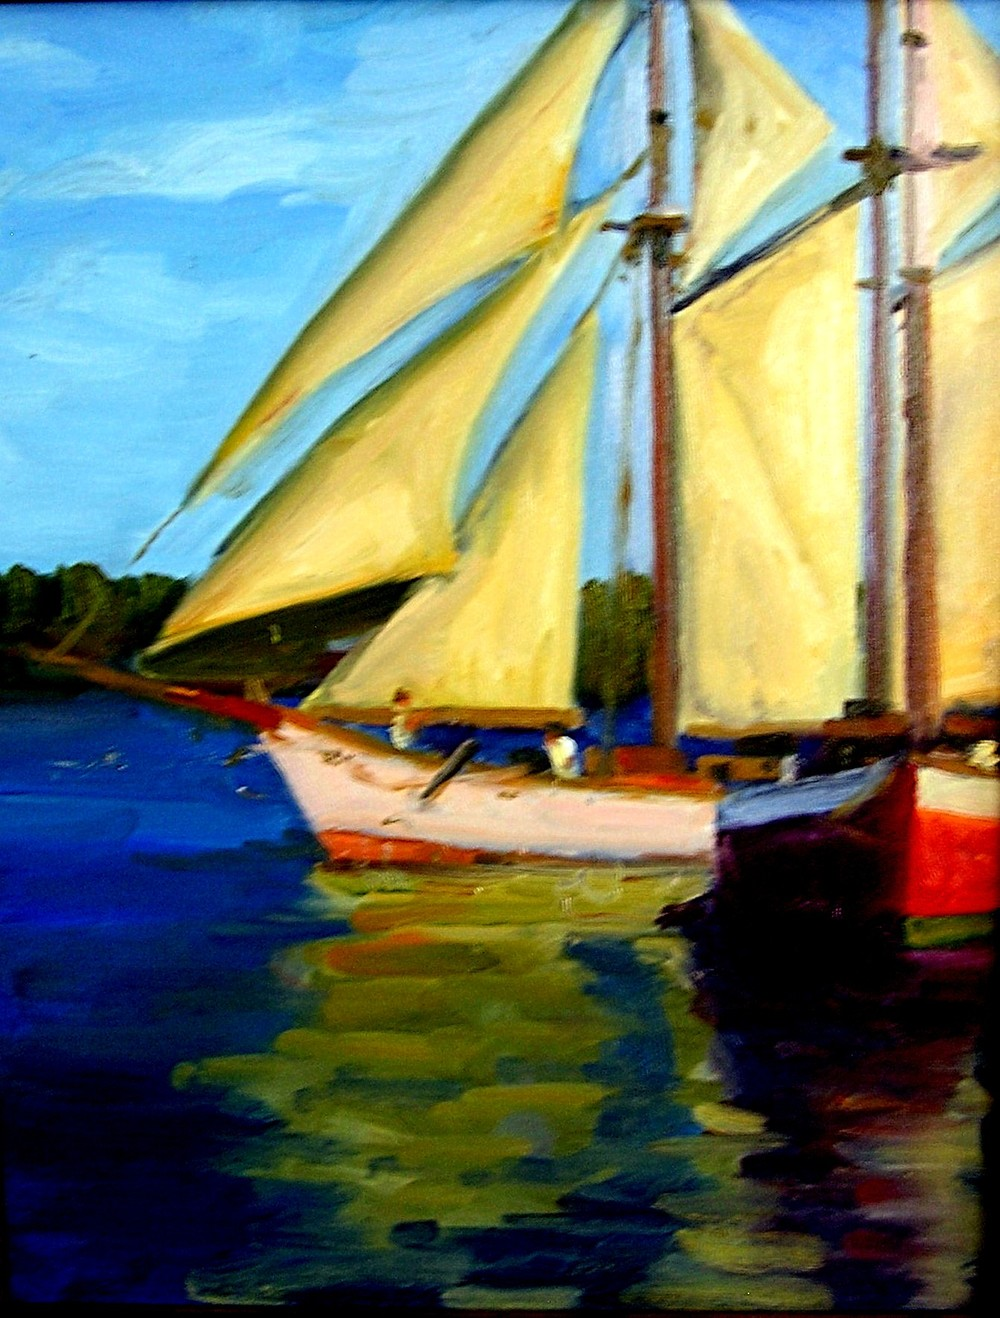 Kathy's Boats- Copyright 2008